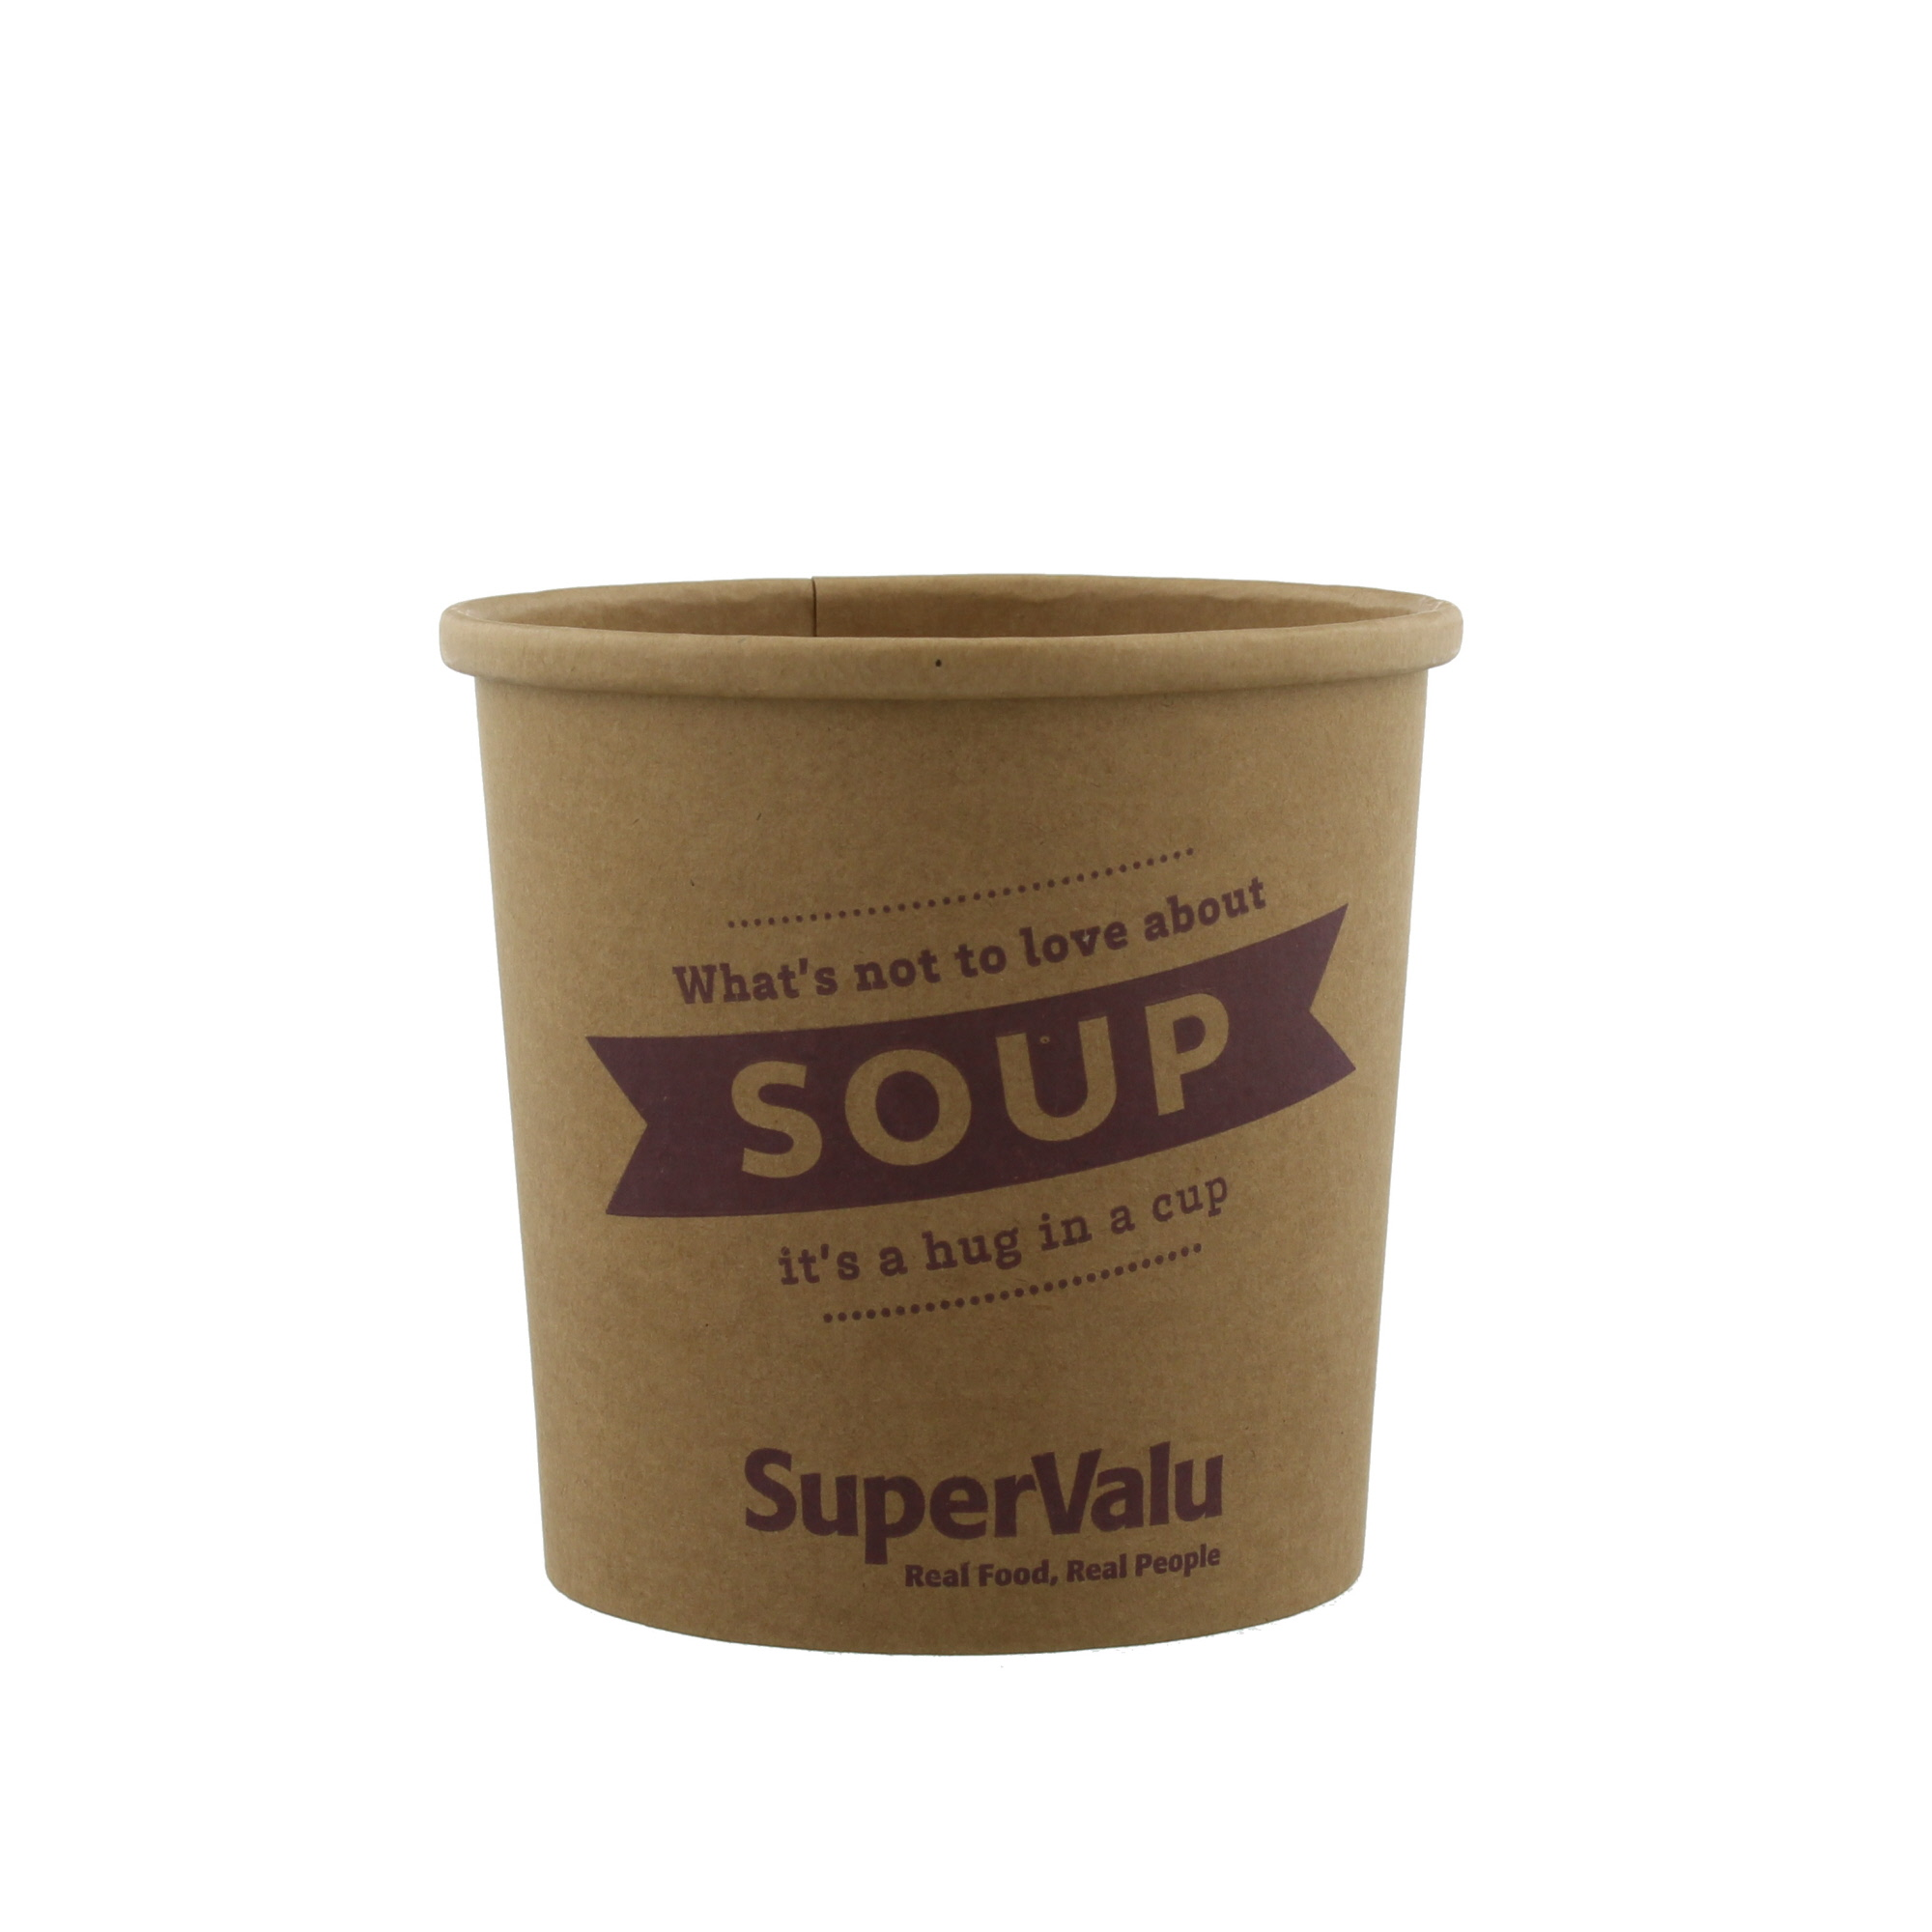 SuperValu 12oz Soup Container